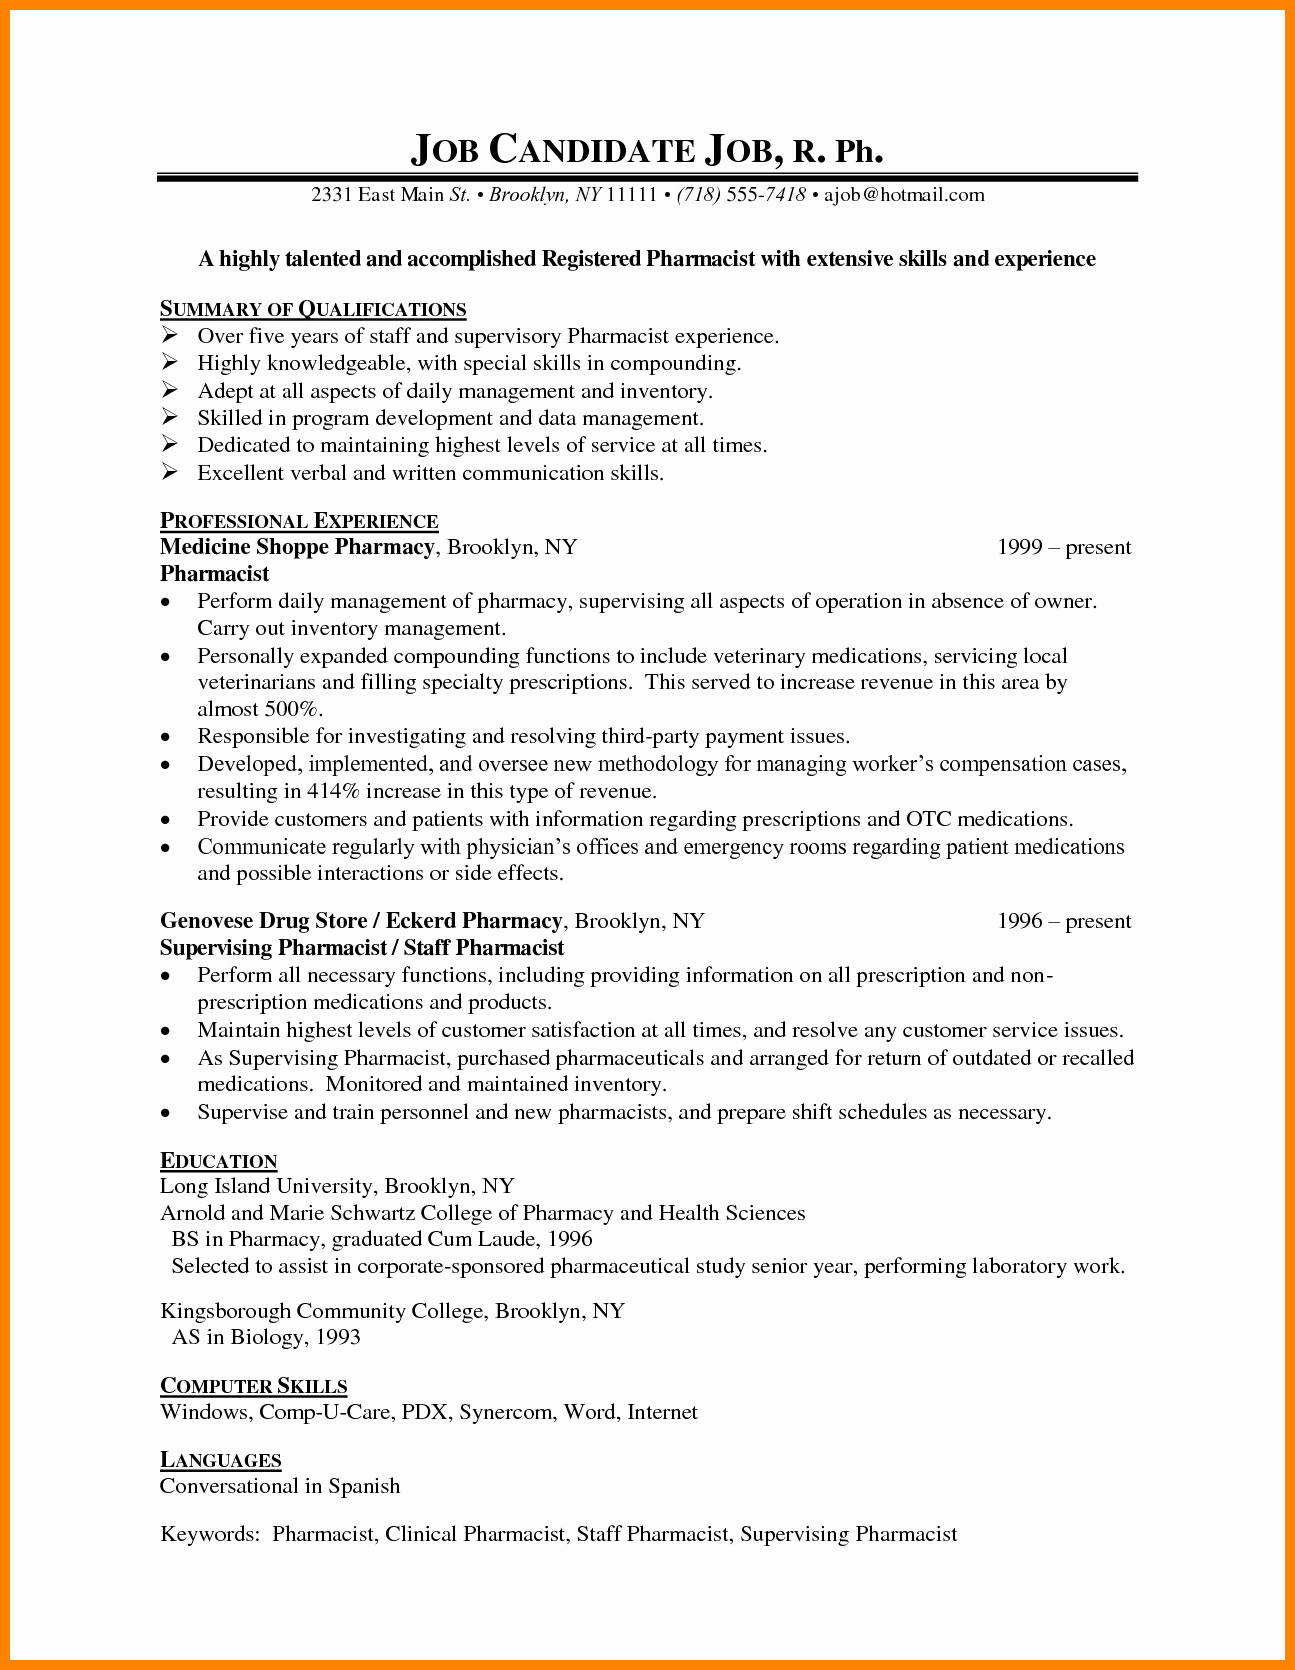 Pharmacist Curriculum Vitae Examples Beautiful 8 Cv Sample for Pharmacist